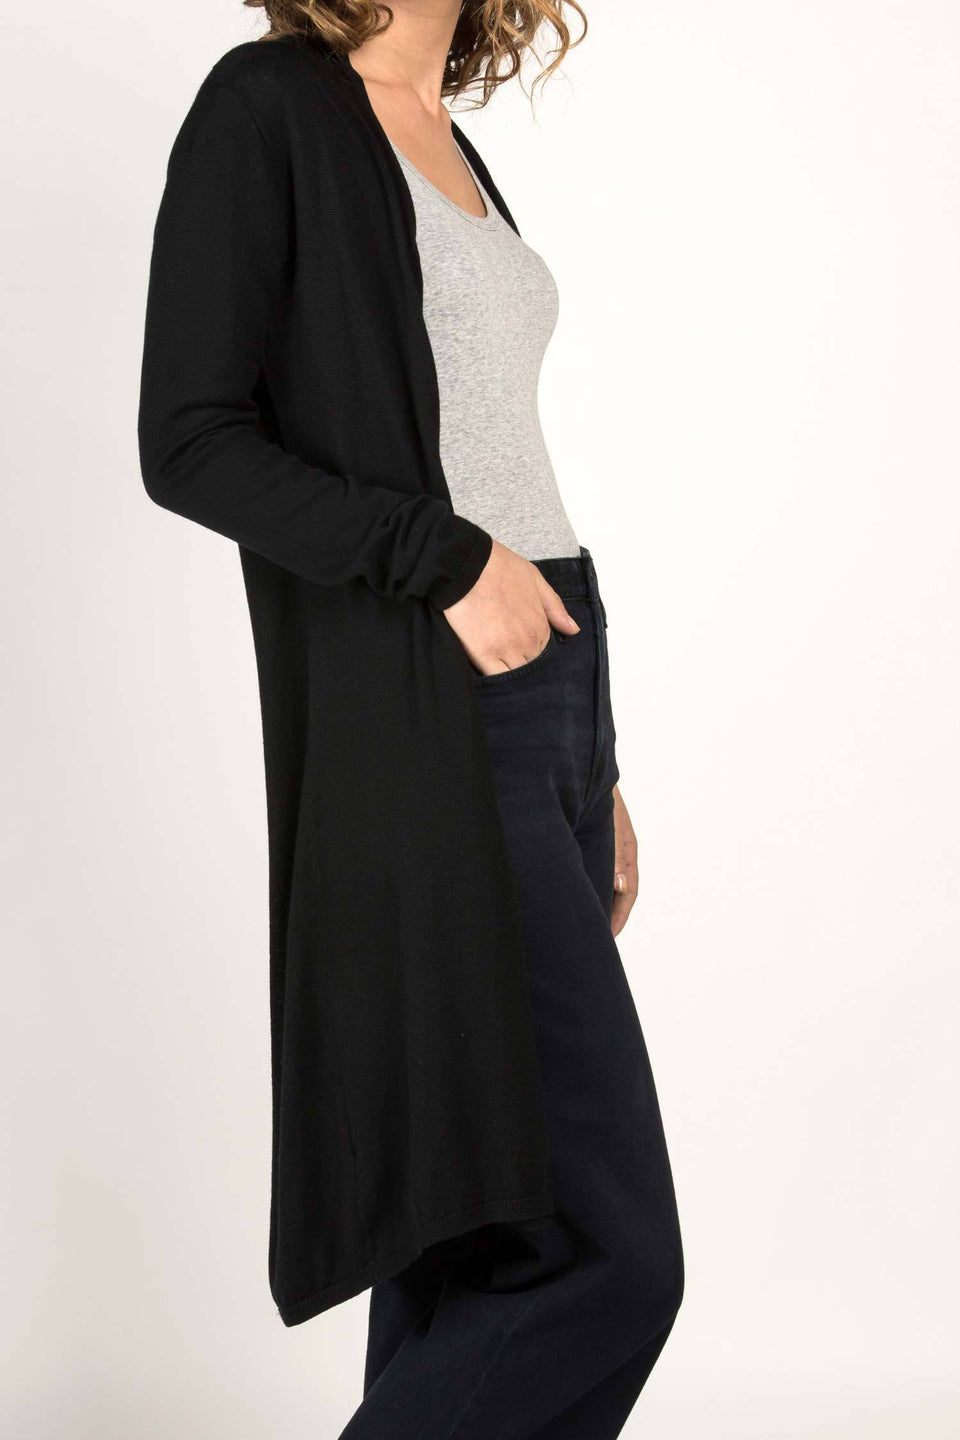 Essential Knit Cardigan in Black